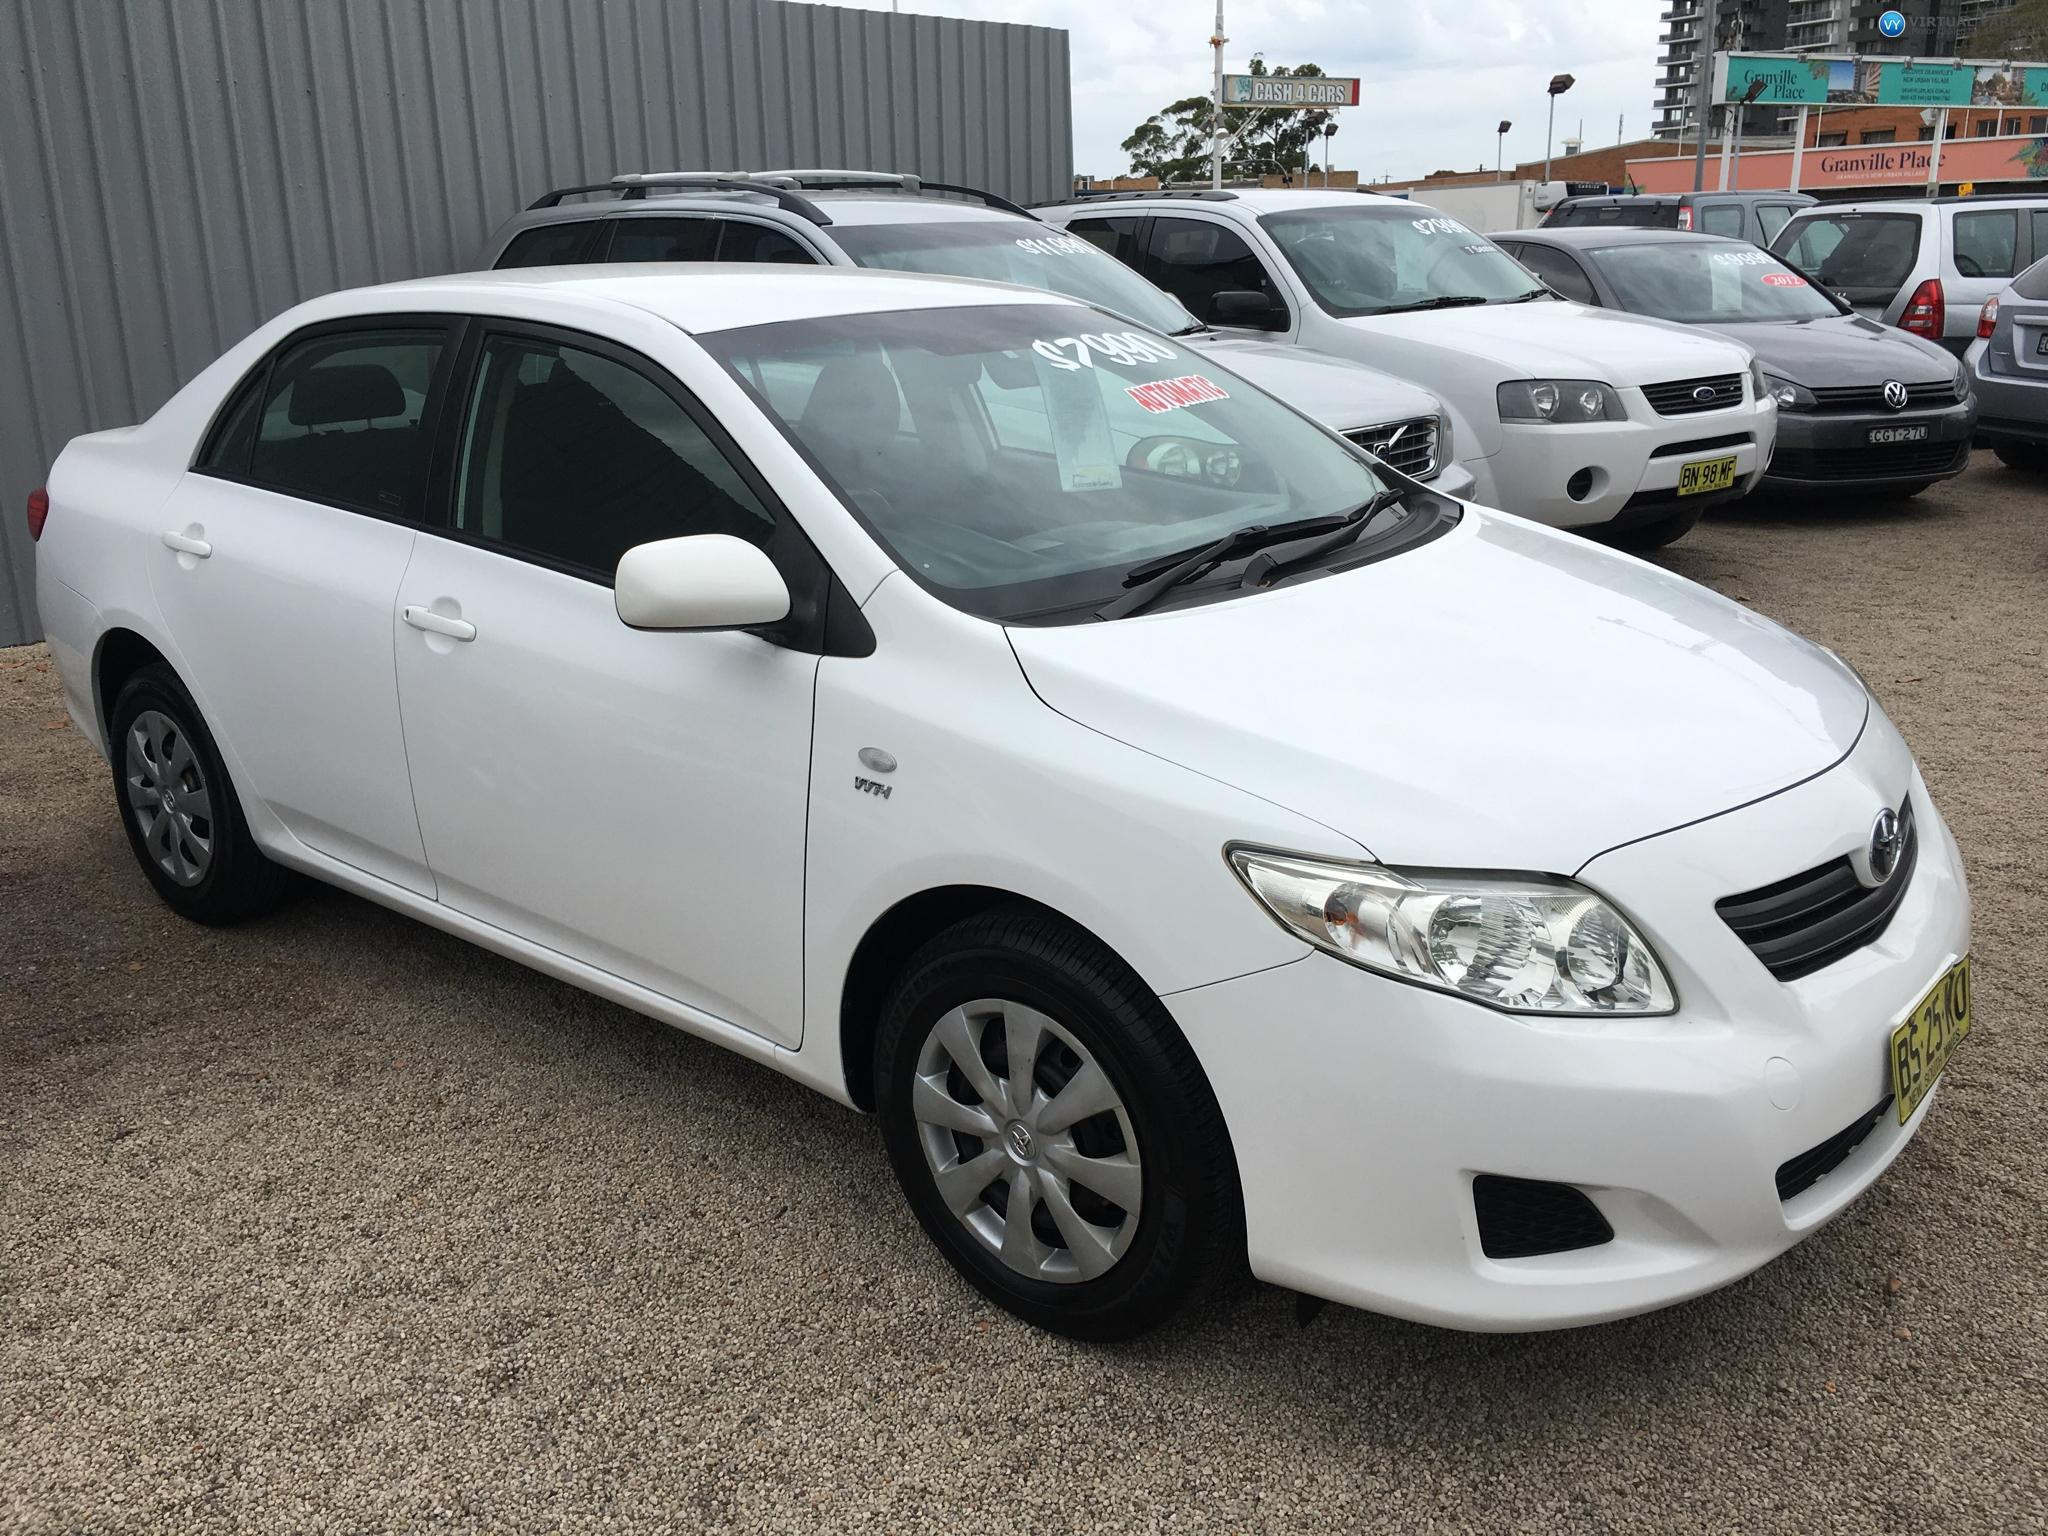 Used toyota Corolla for Sale Inspirational Cars for Sale Virtualyard New Used Cars for Sale